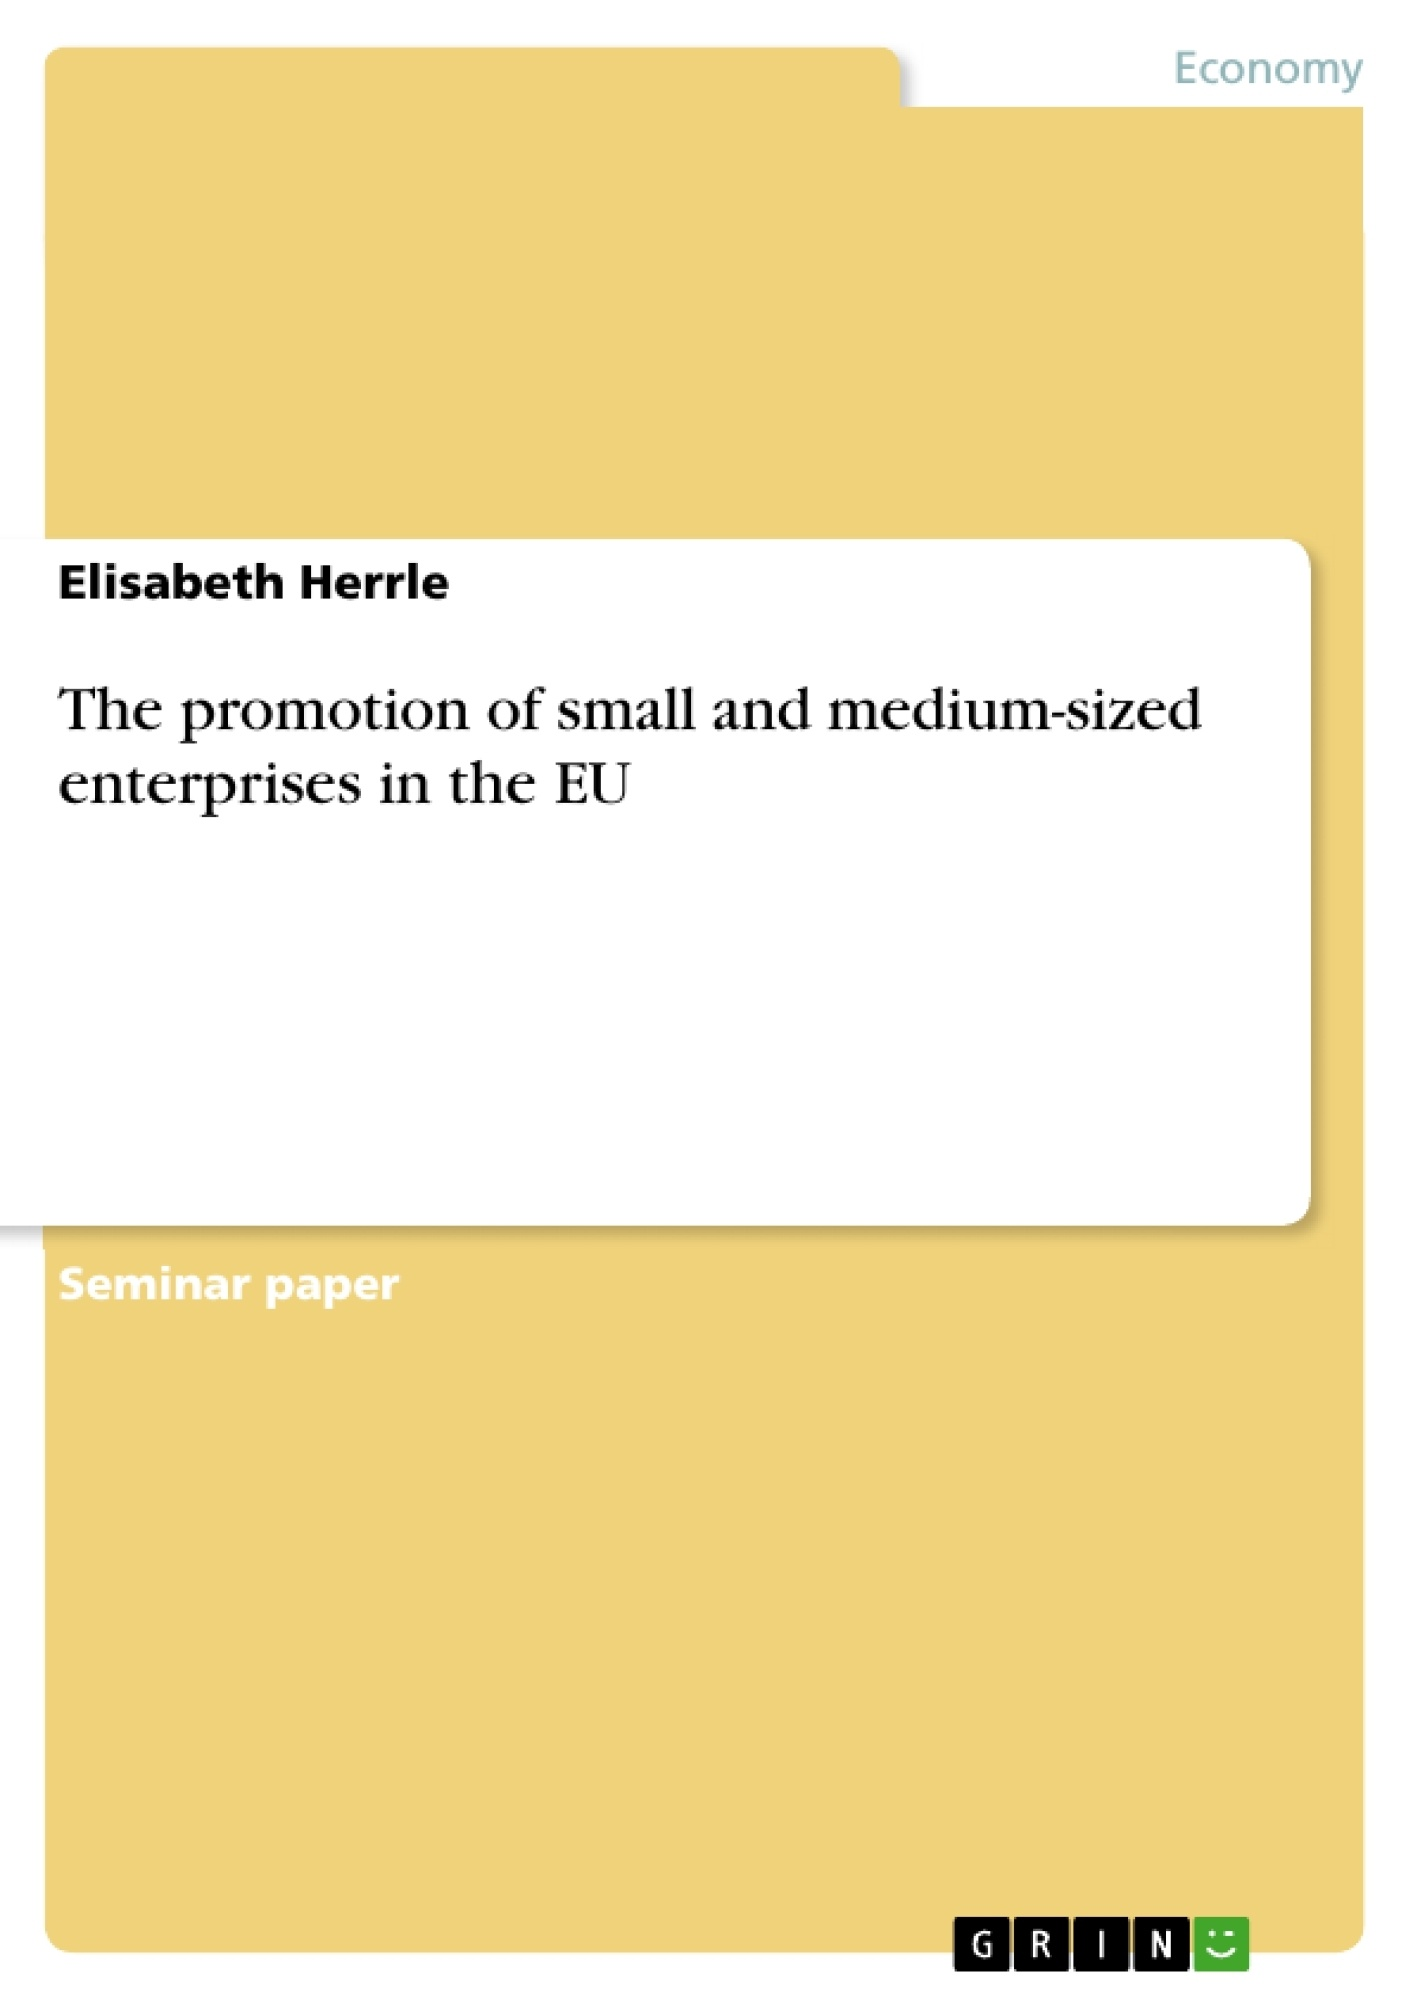 Title: The promotion of small and medium-sized enterprises in the EU